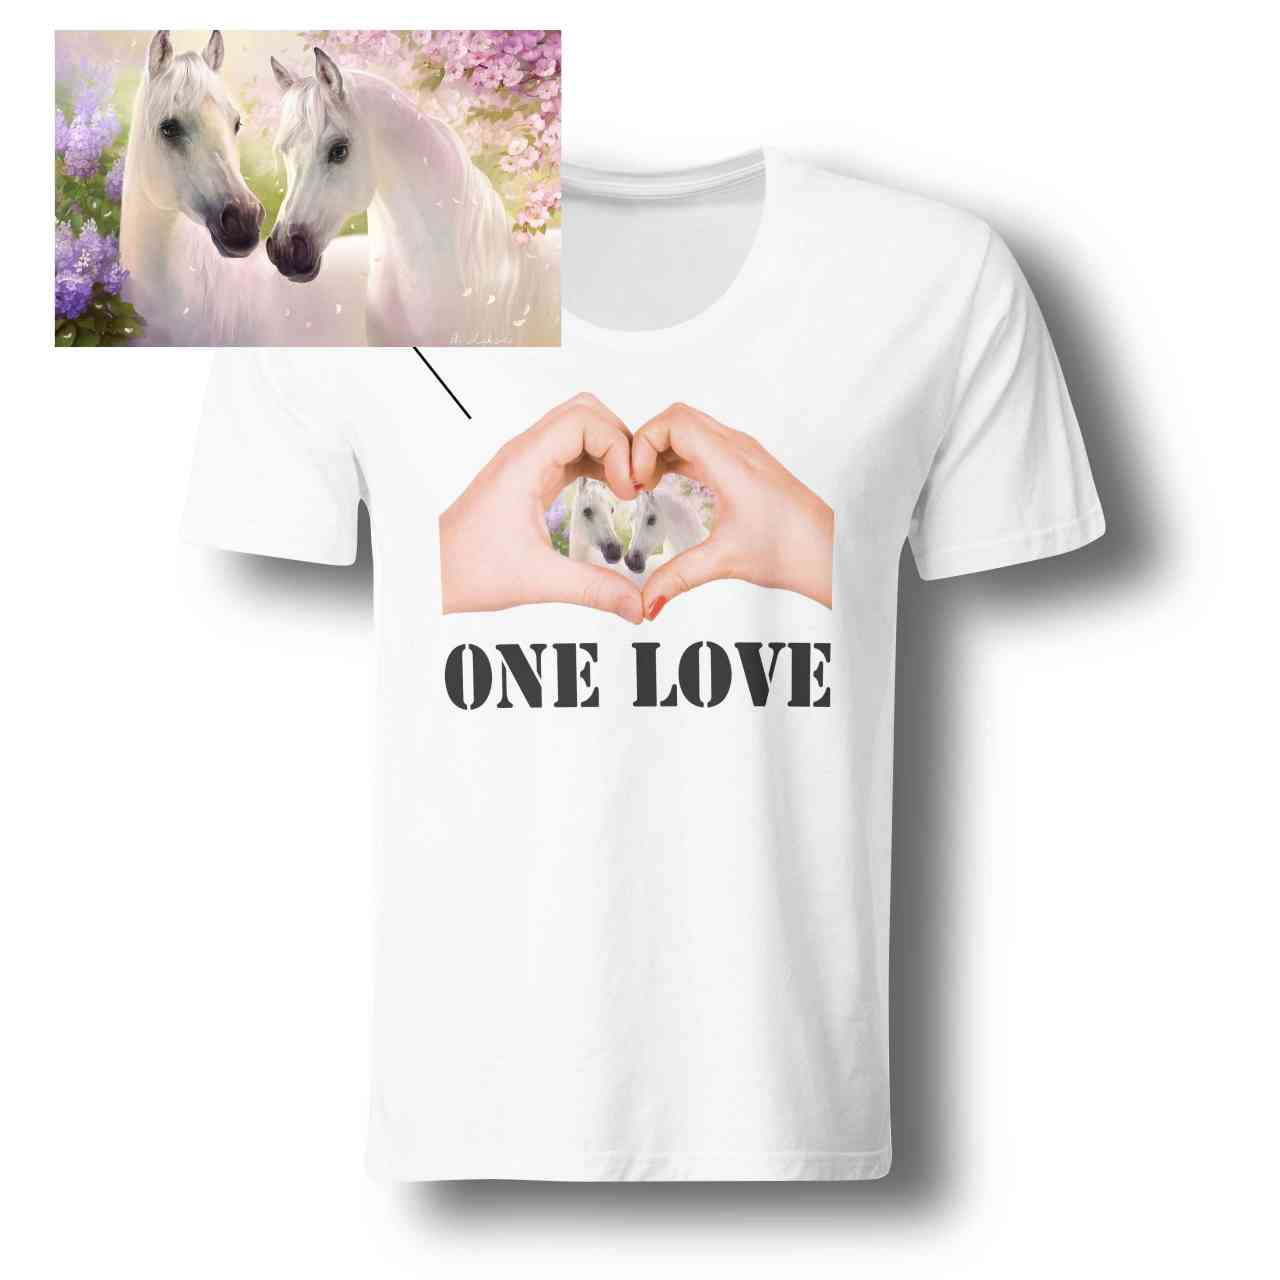 ONE LOVE Foto Shirt 101% individuell